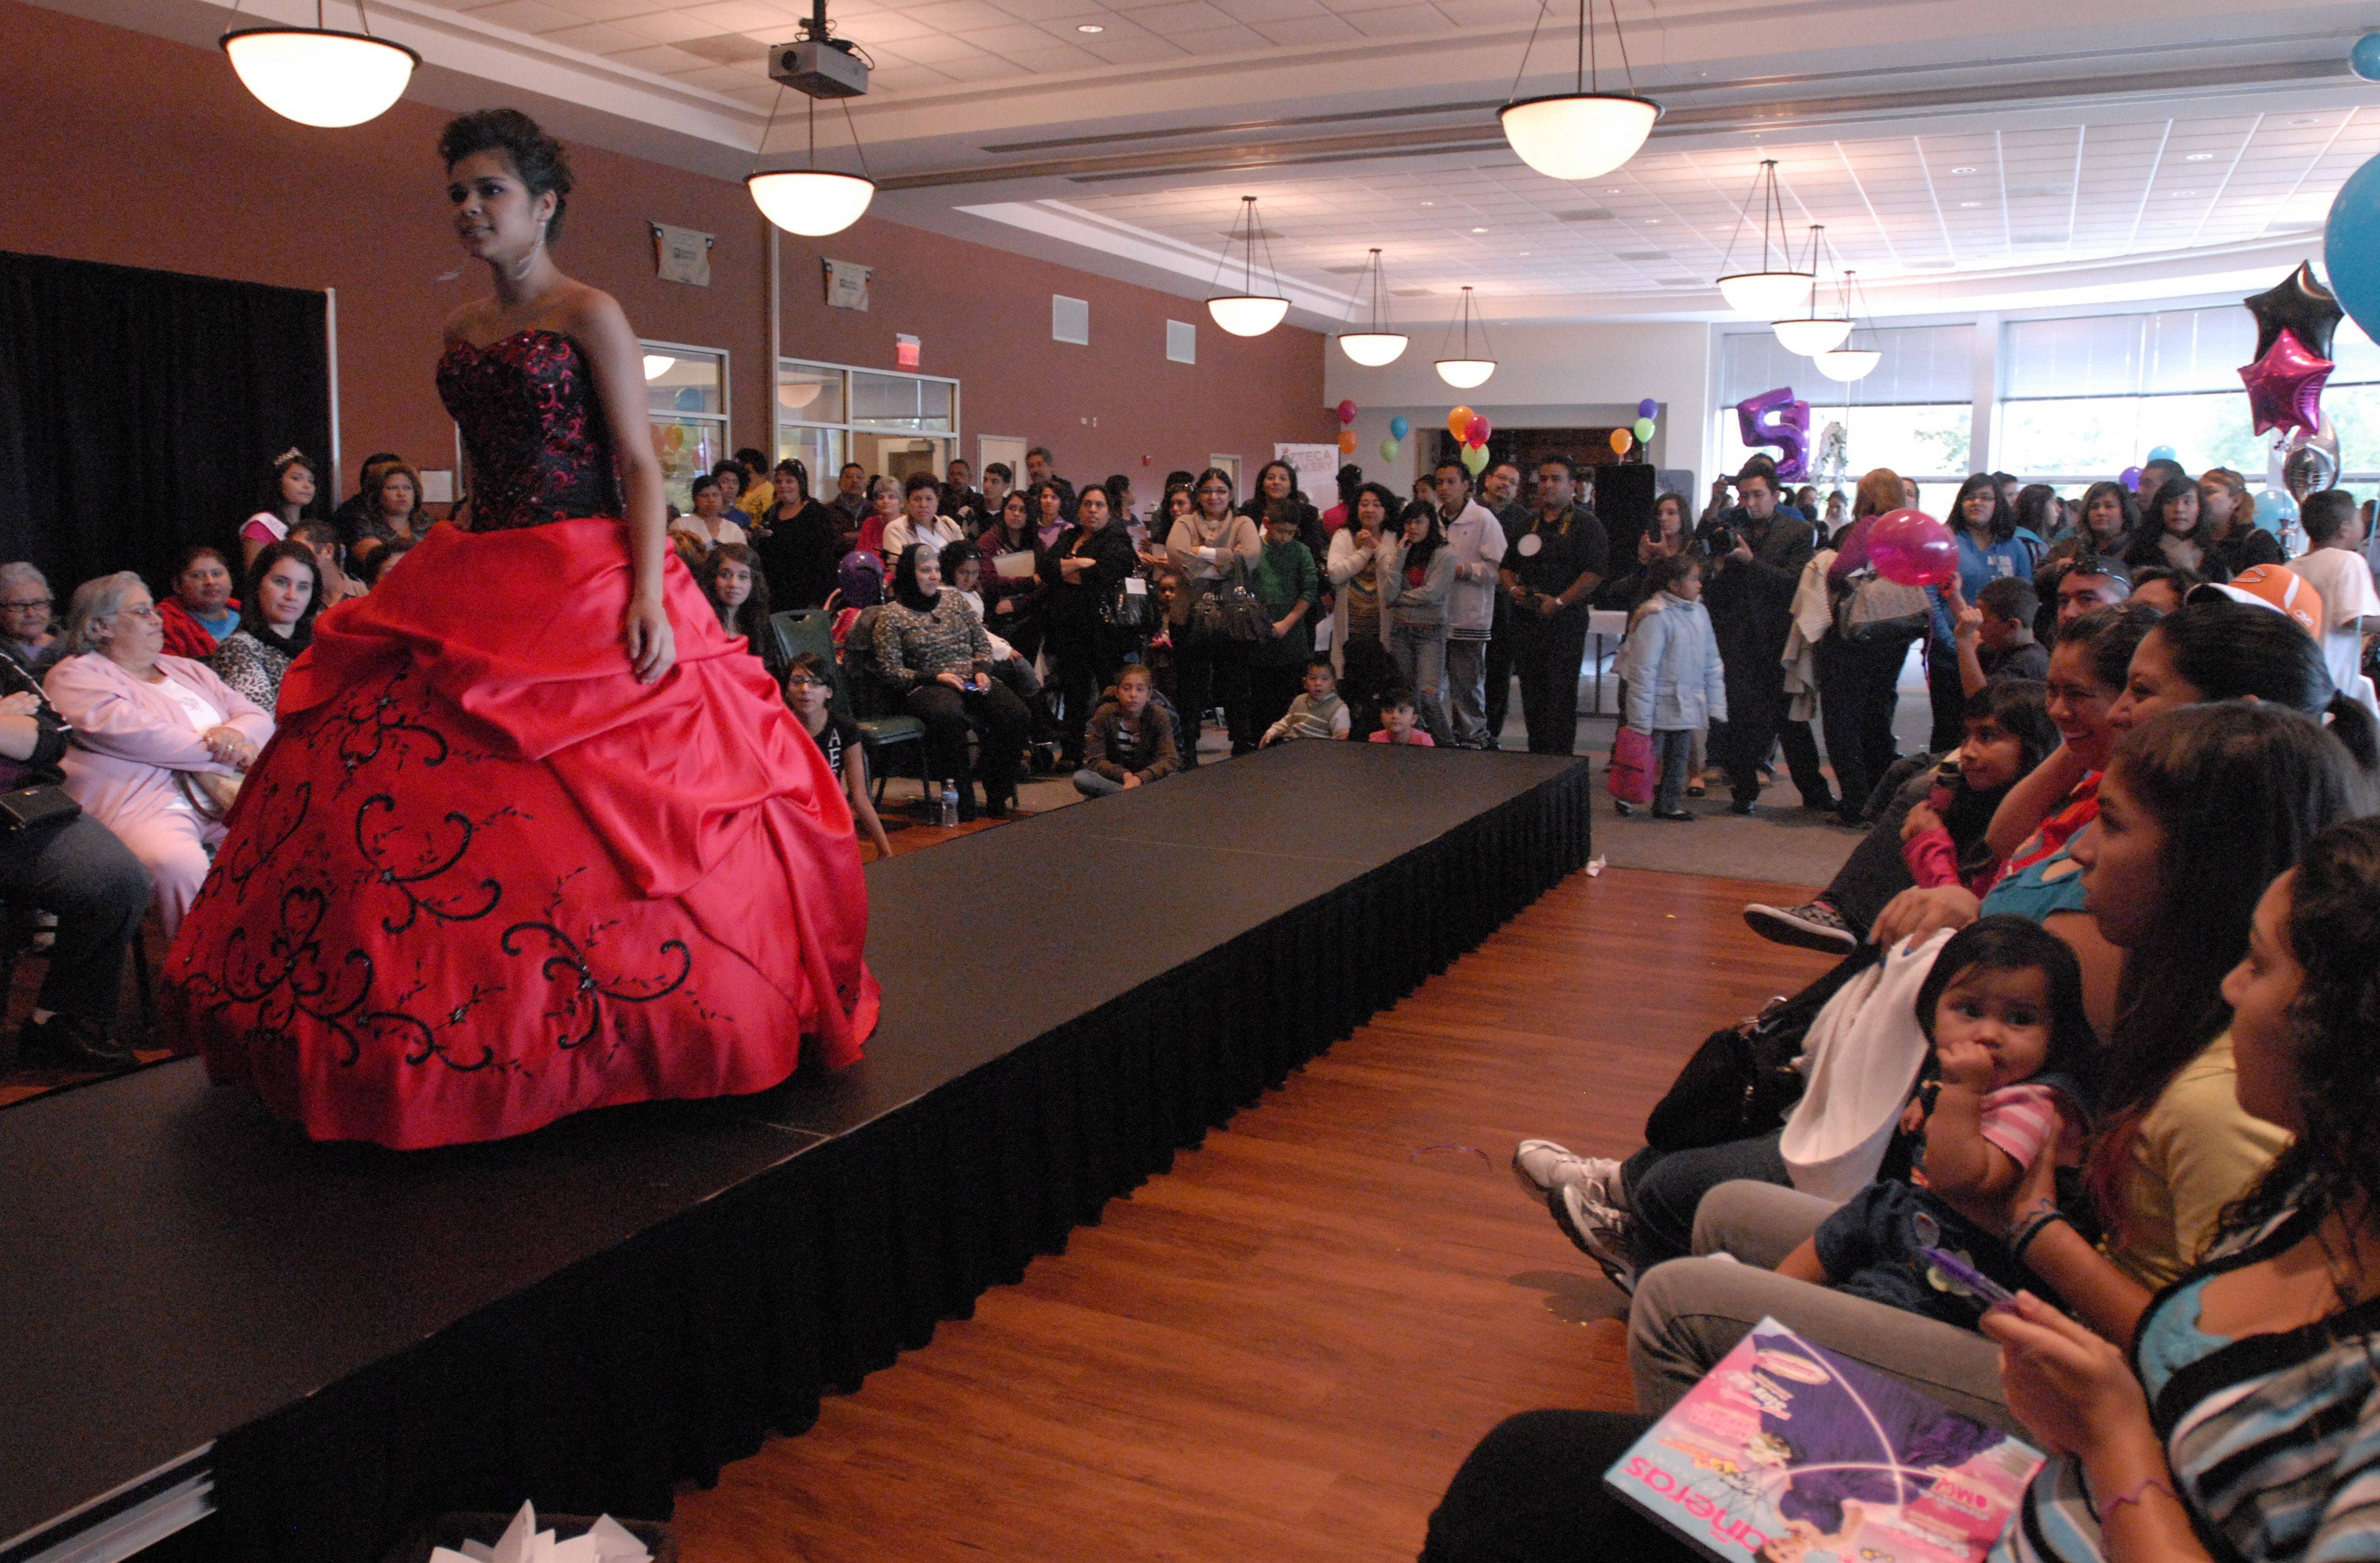 Martza Juarez, 15, is the last to walk the runway at the Centre of Elgin during a showcase of venders for Quinceaneras Sunday afternoon.